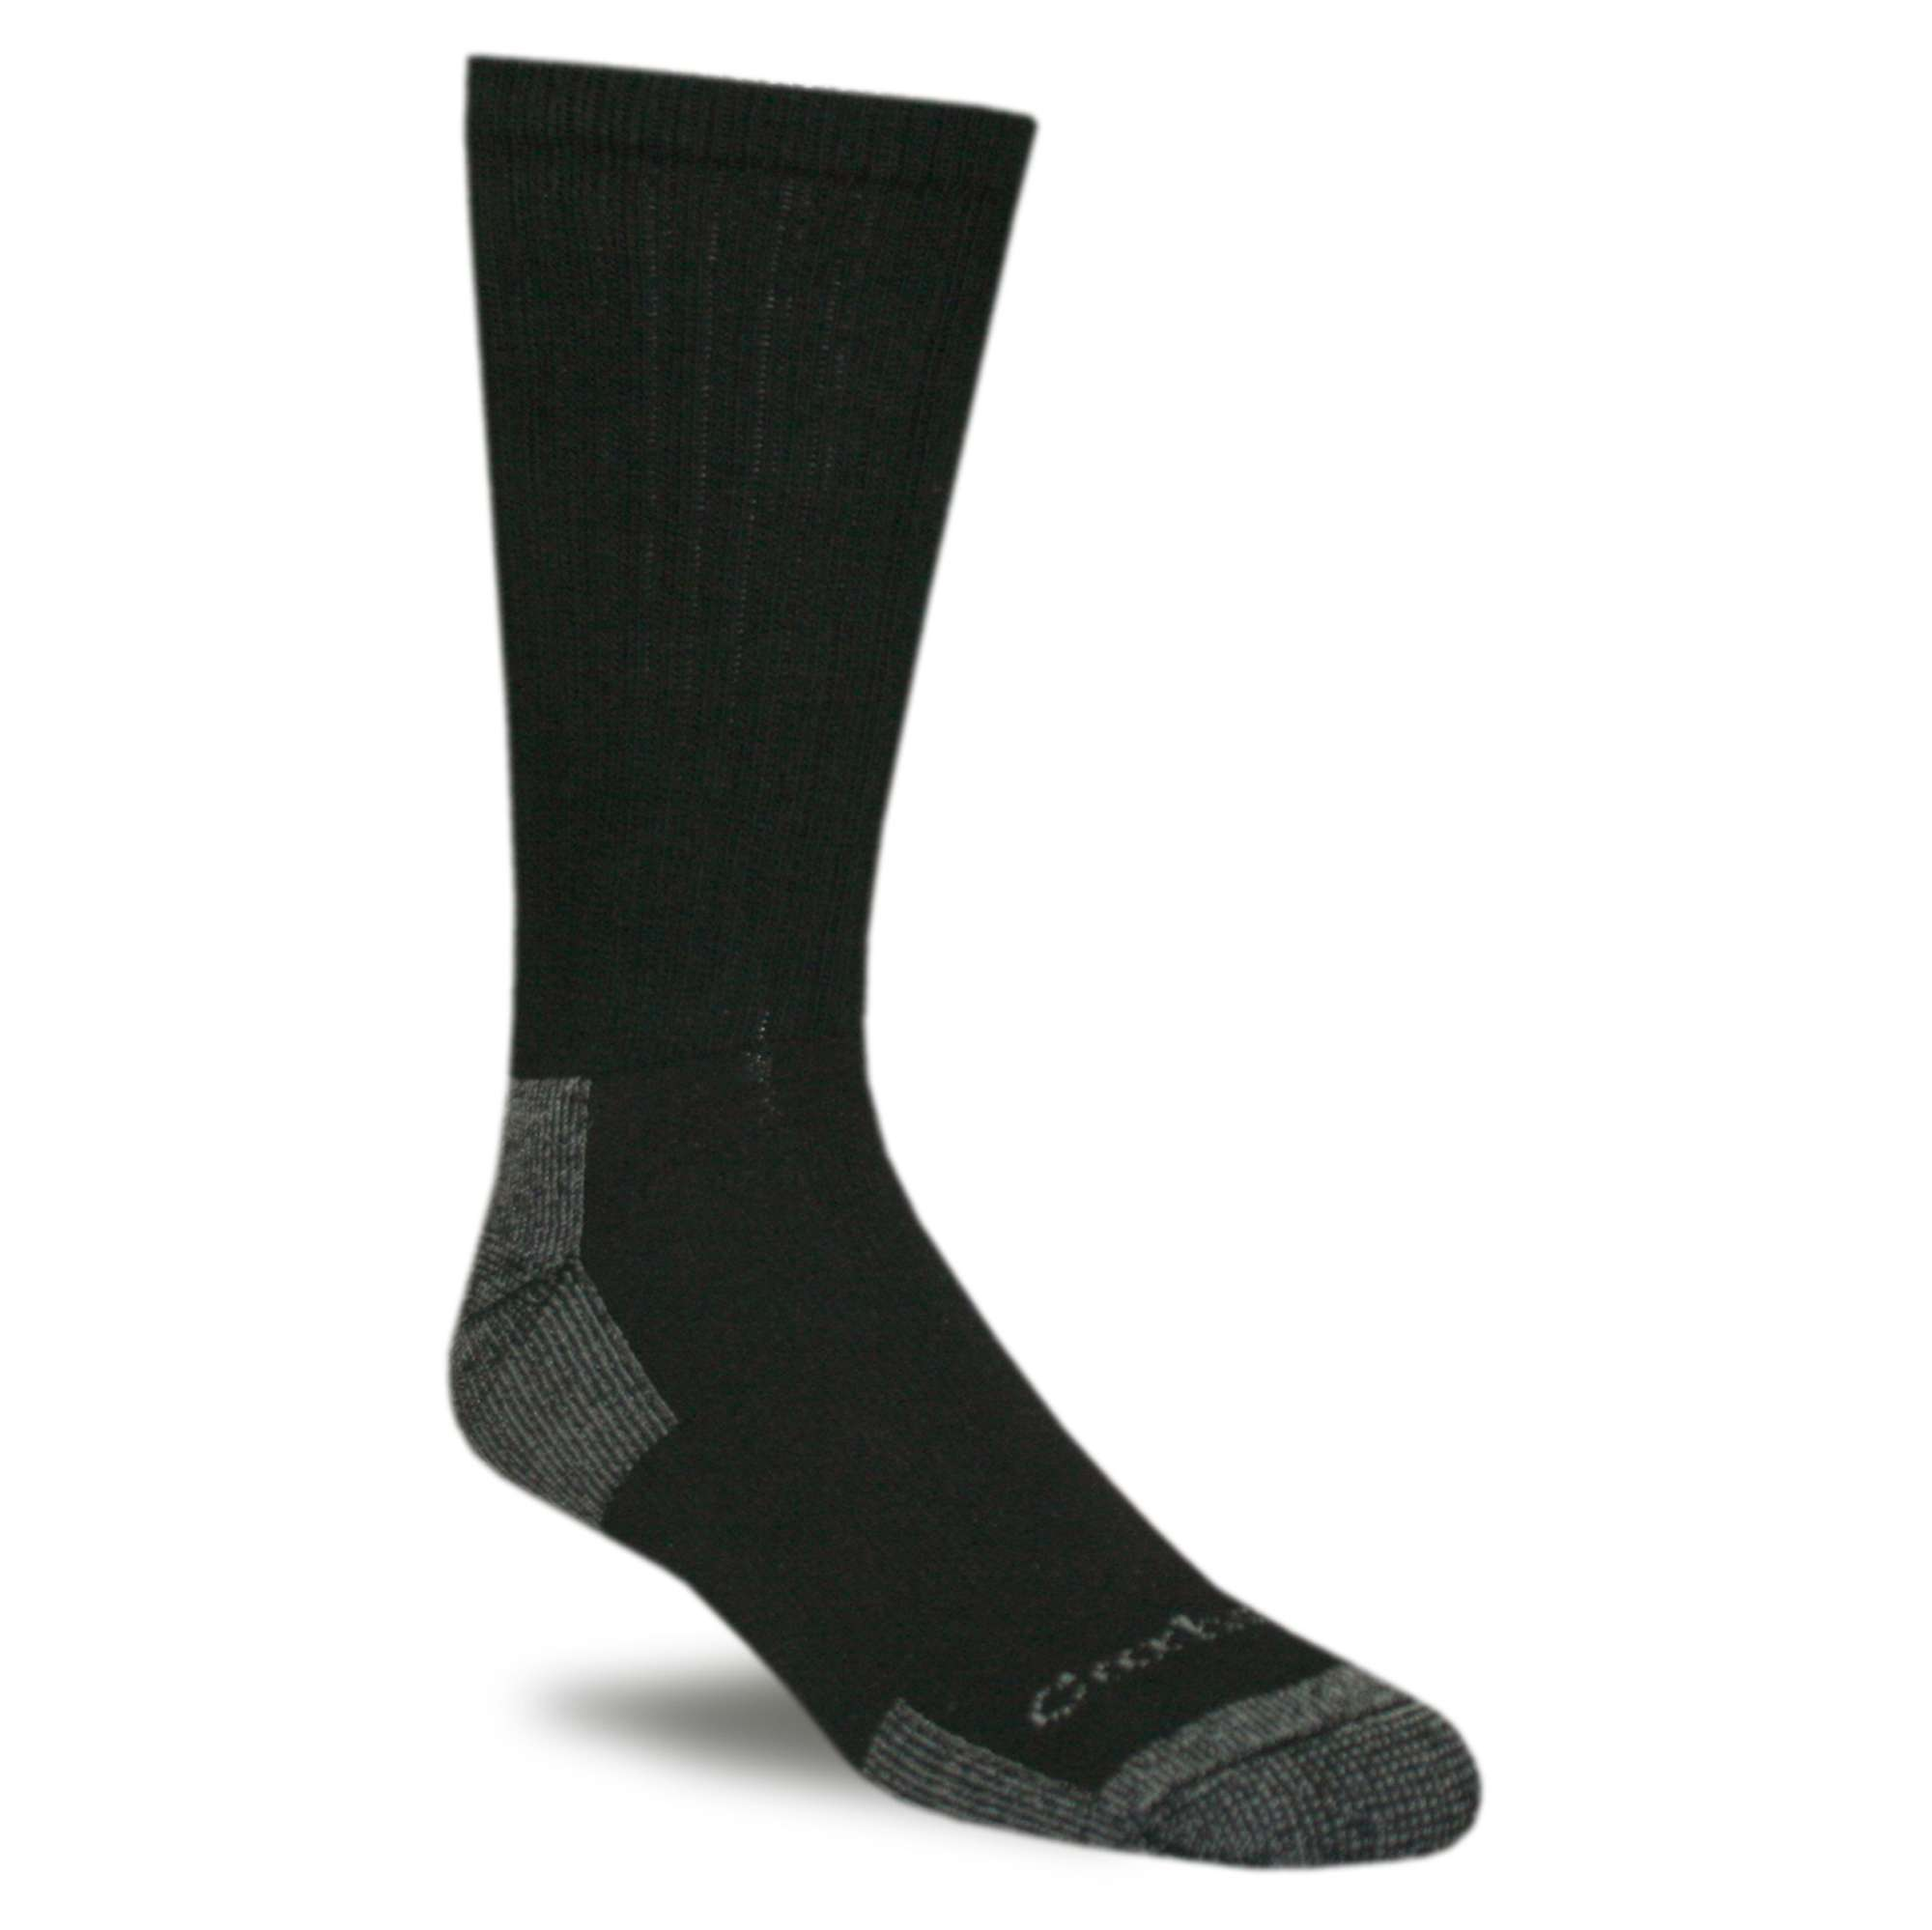 Carhartt All Season Cotton Crew Sock